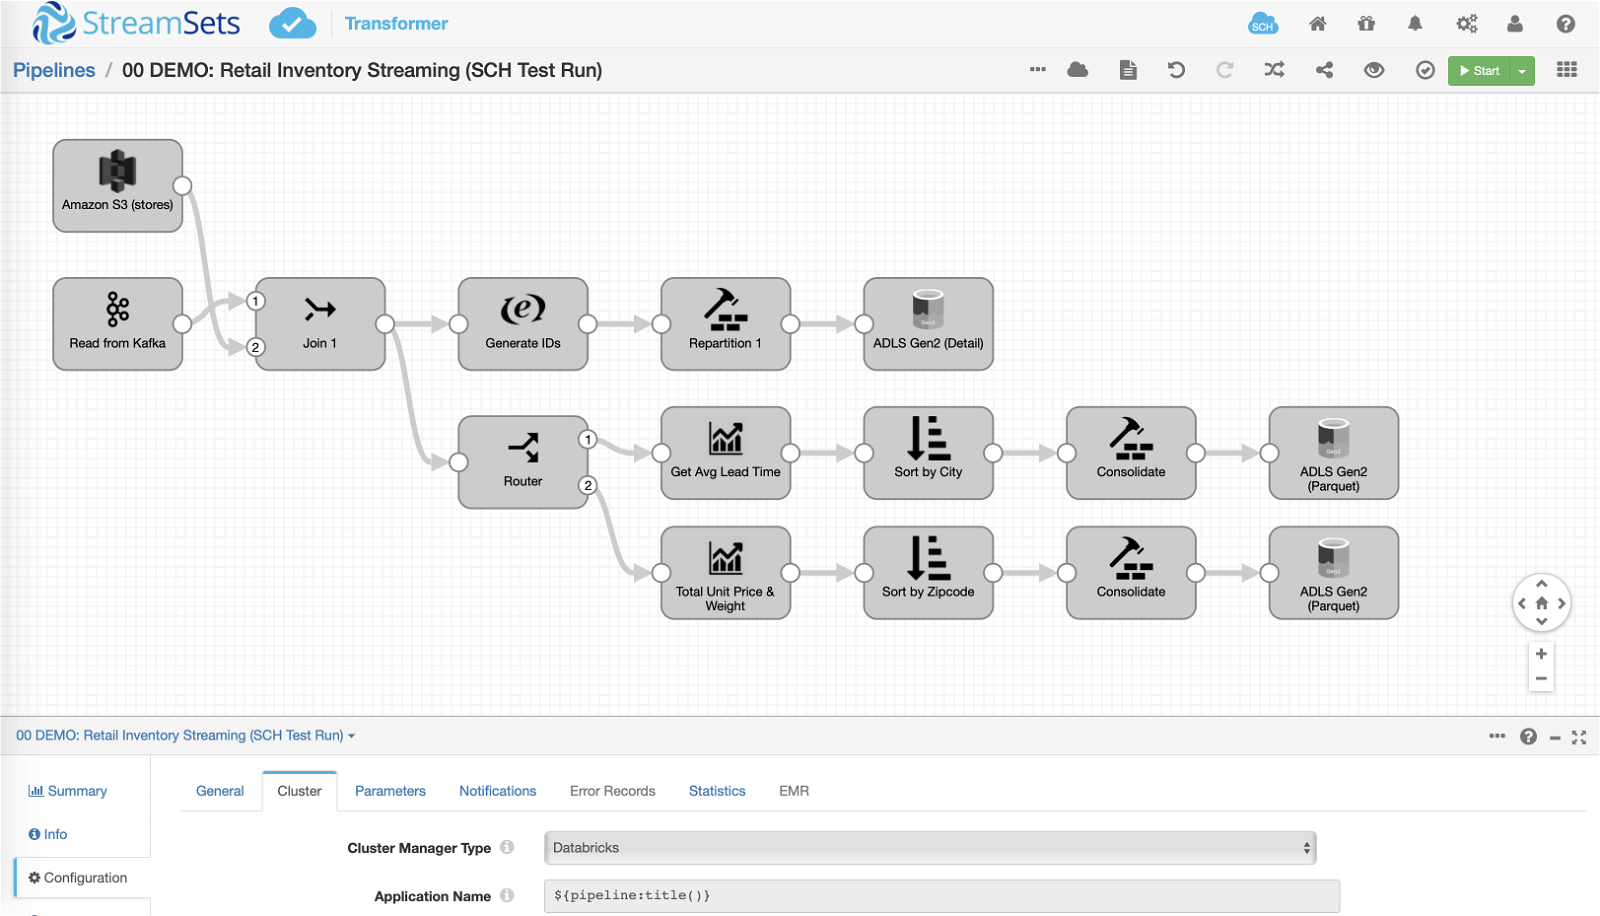 Transformer data pipeline with Spark